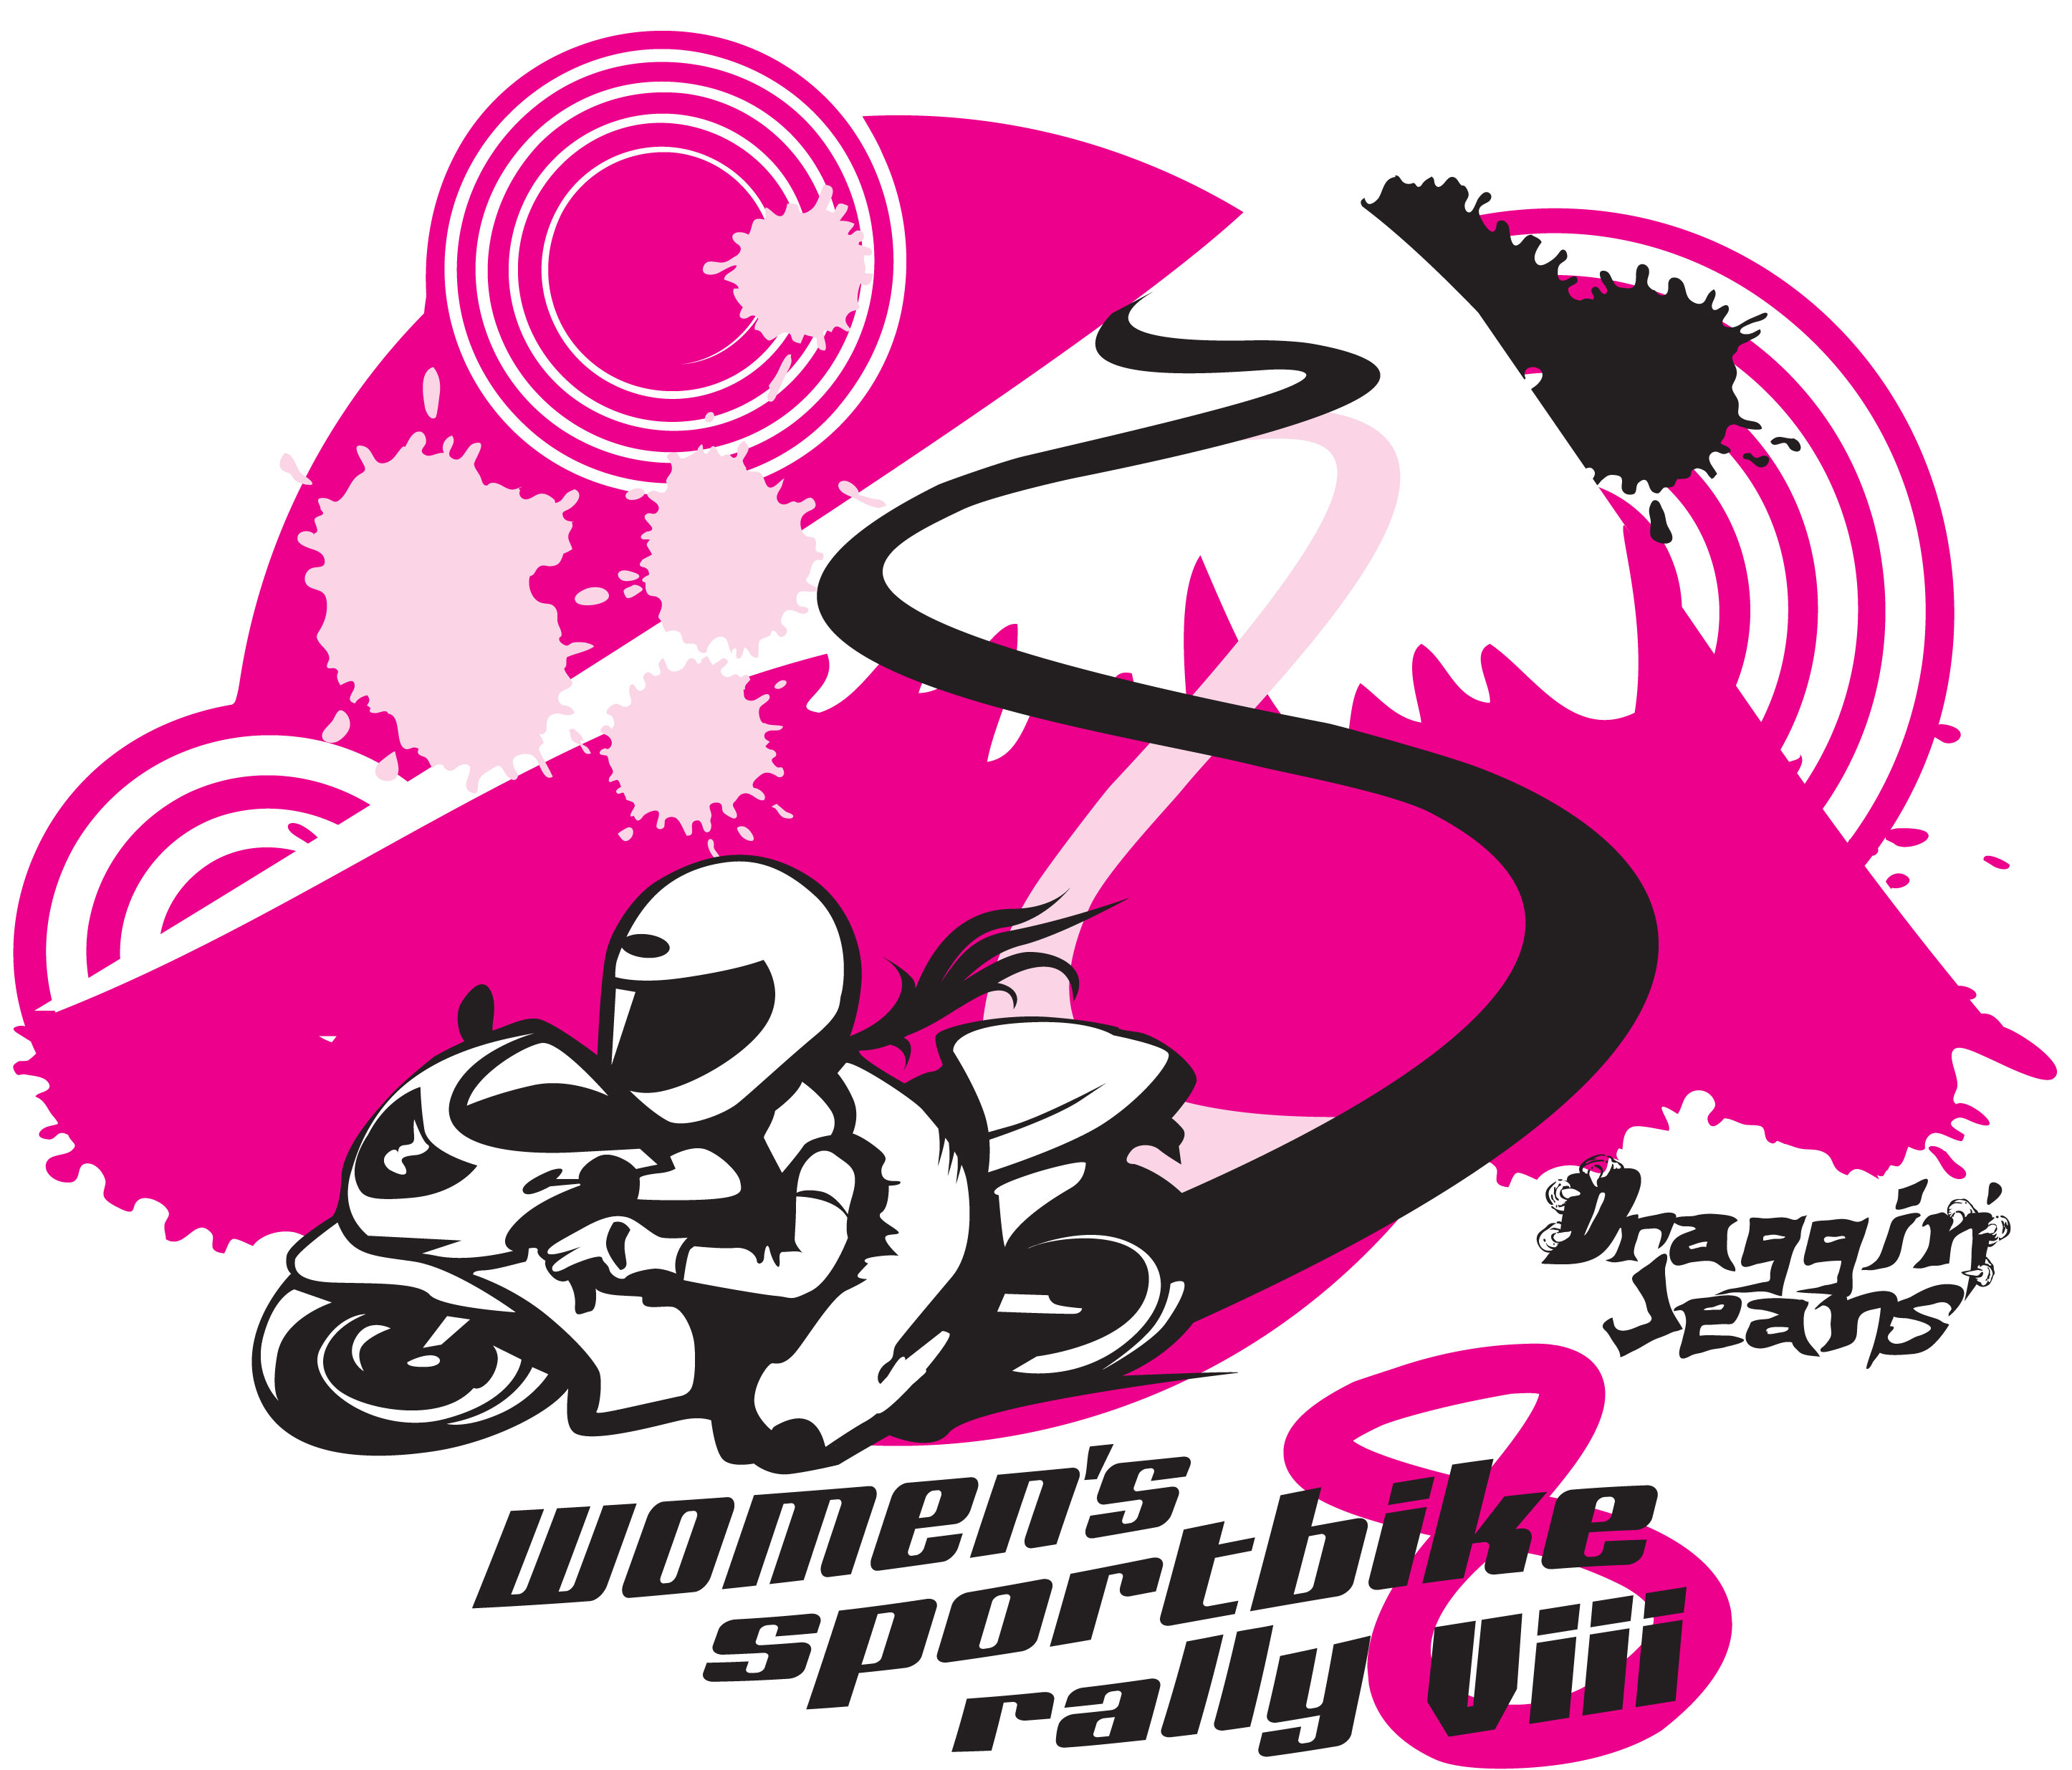 Women's Sportbike Rally Invades Deal's Gap September 6-8 -